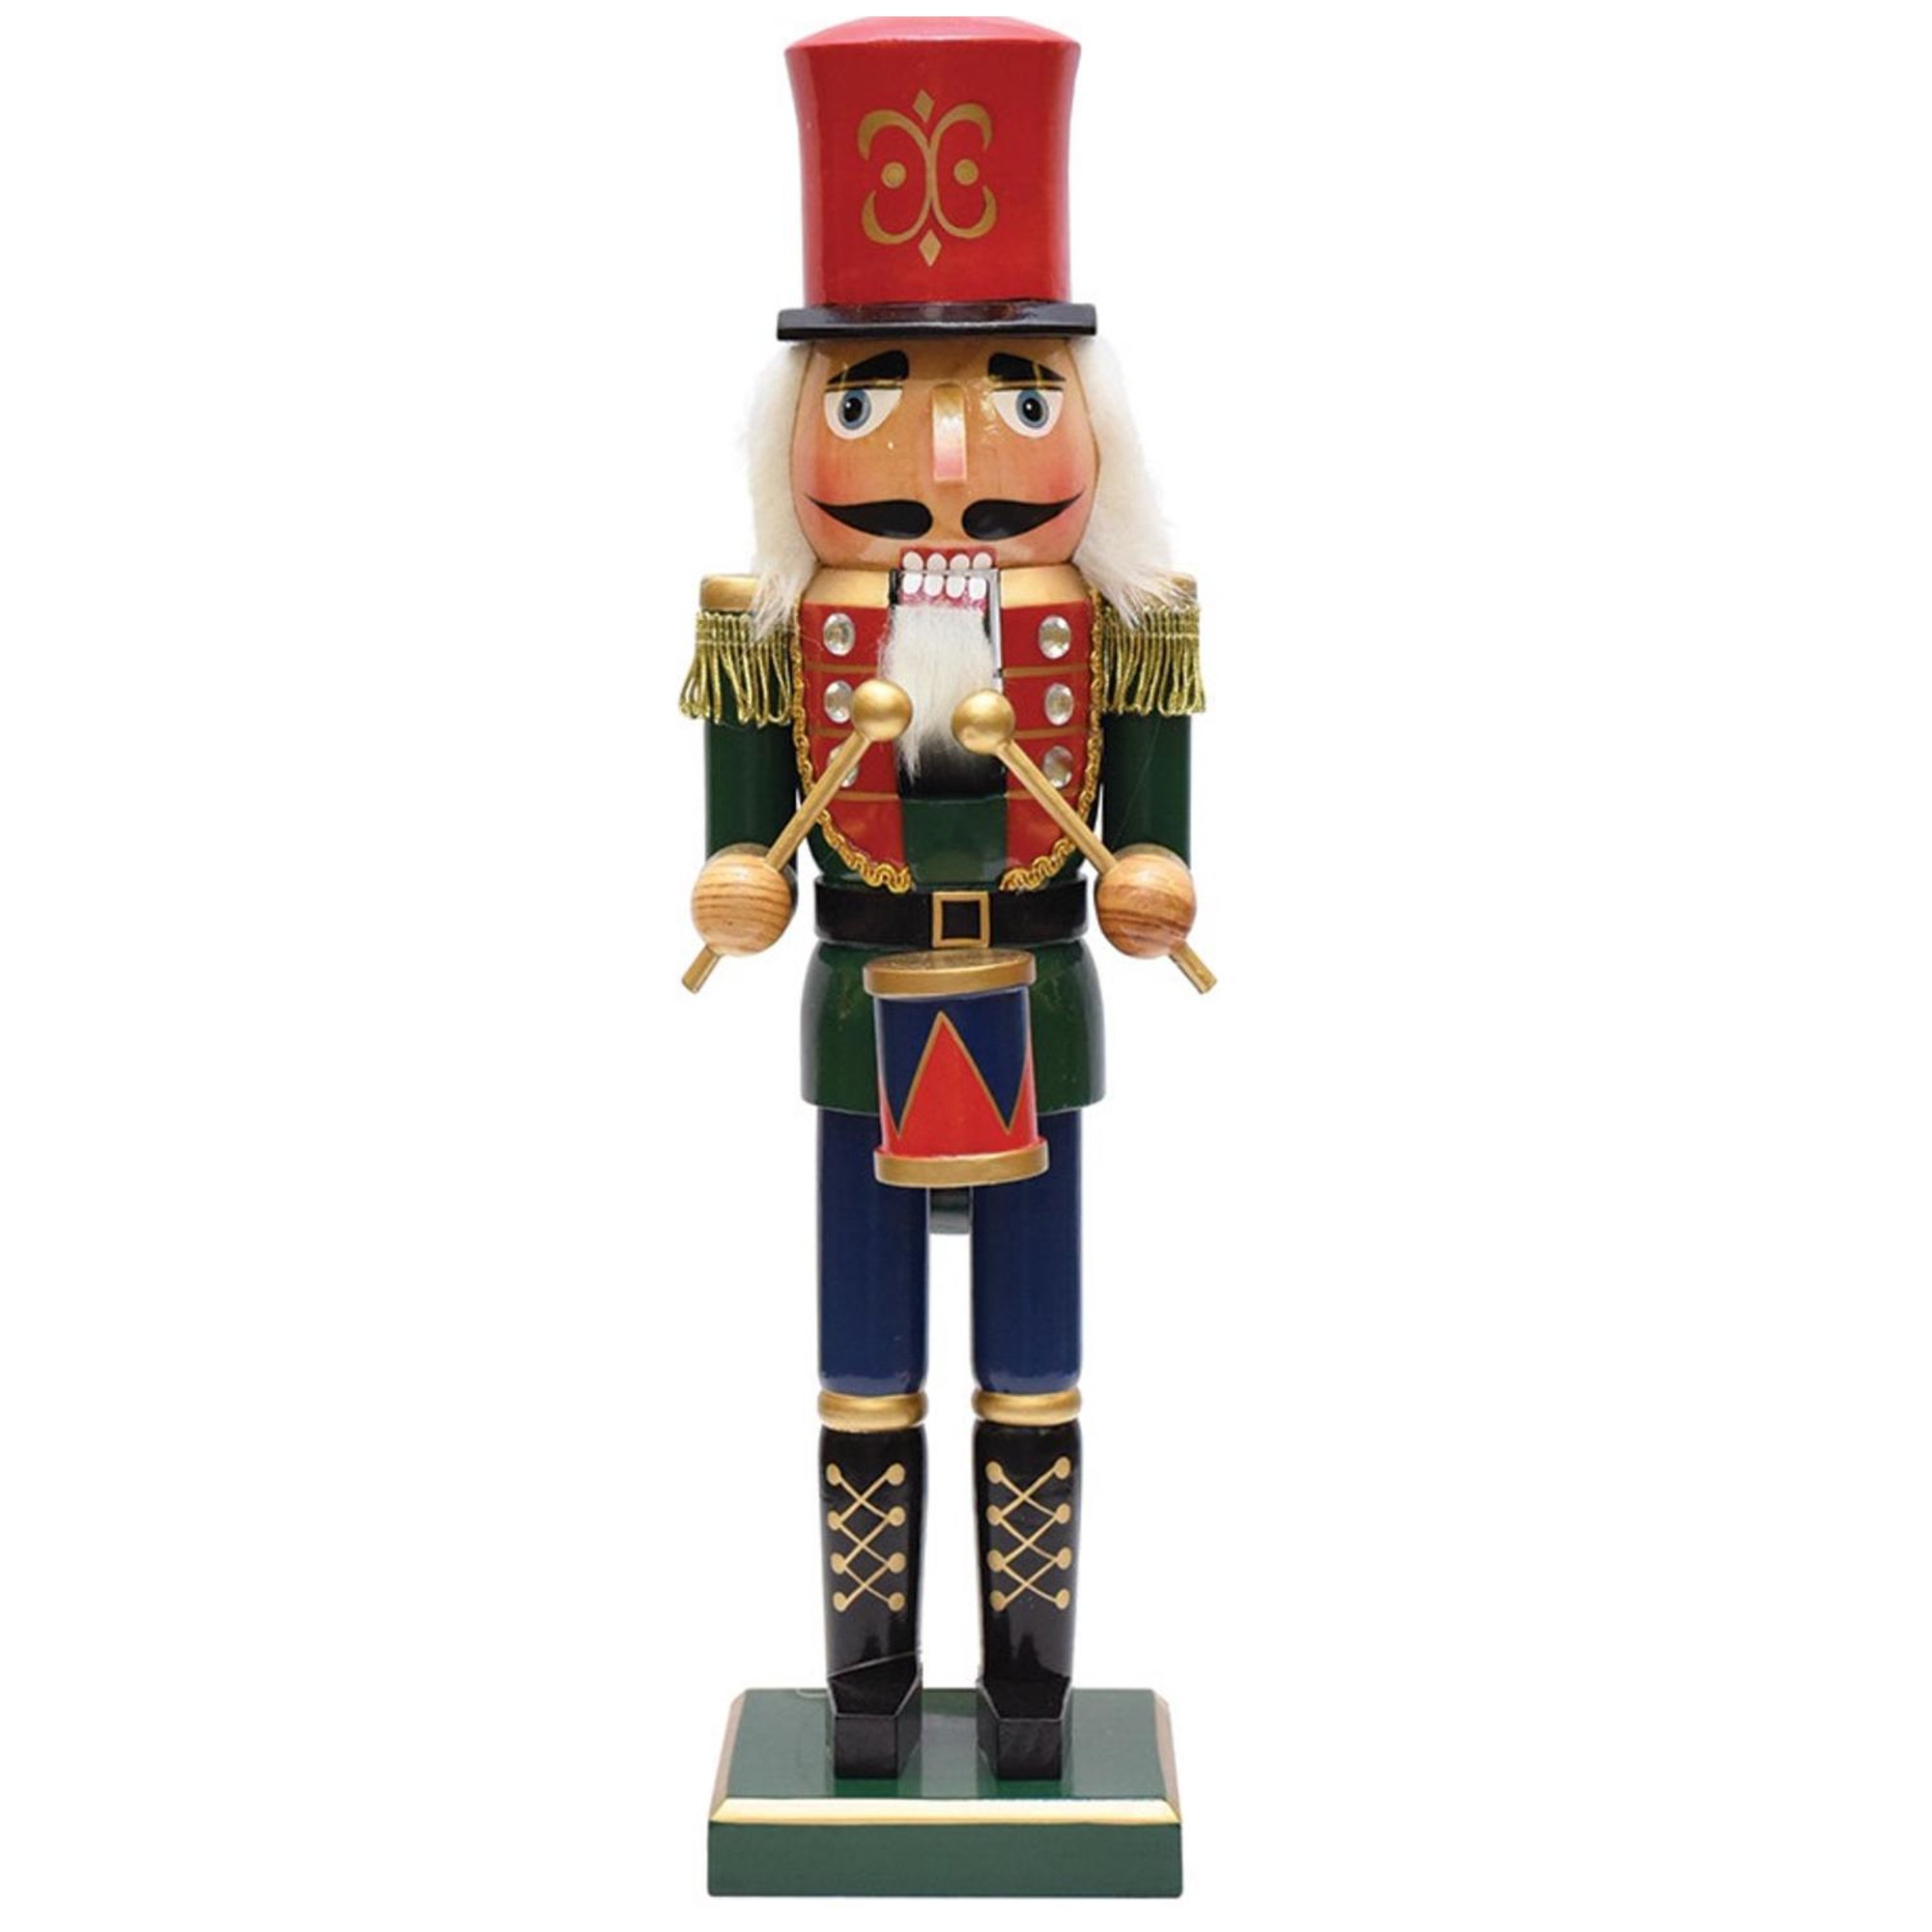 Christmas Nutcracker.14 Green Red And Gold Wooden Christmas Nutcracker Drummer